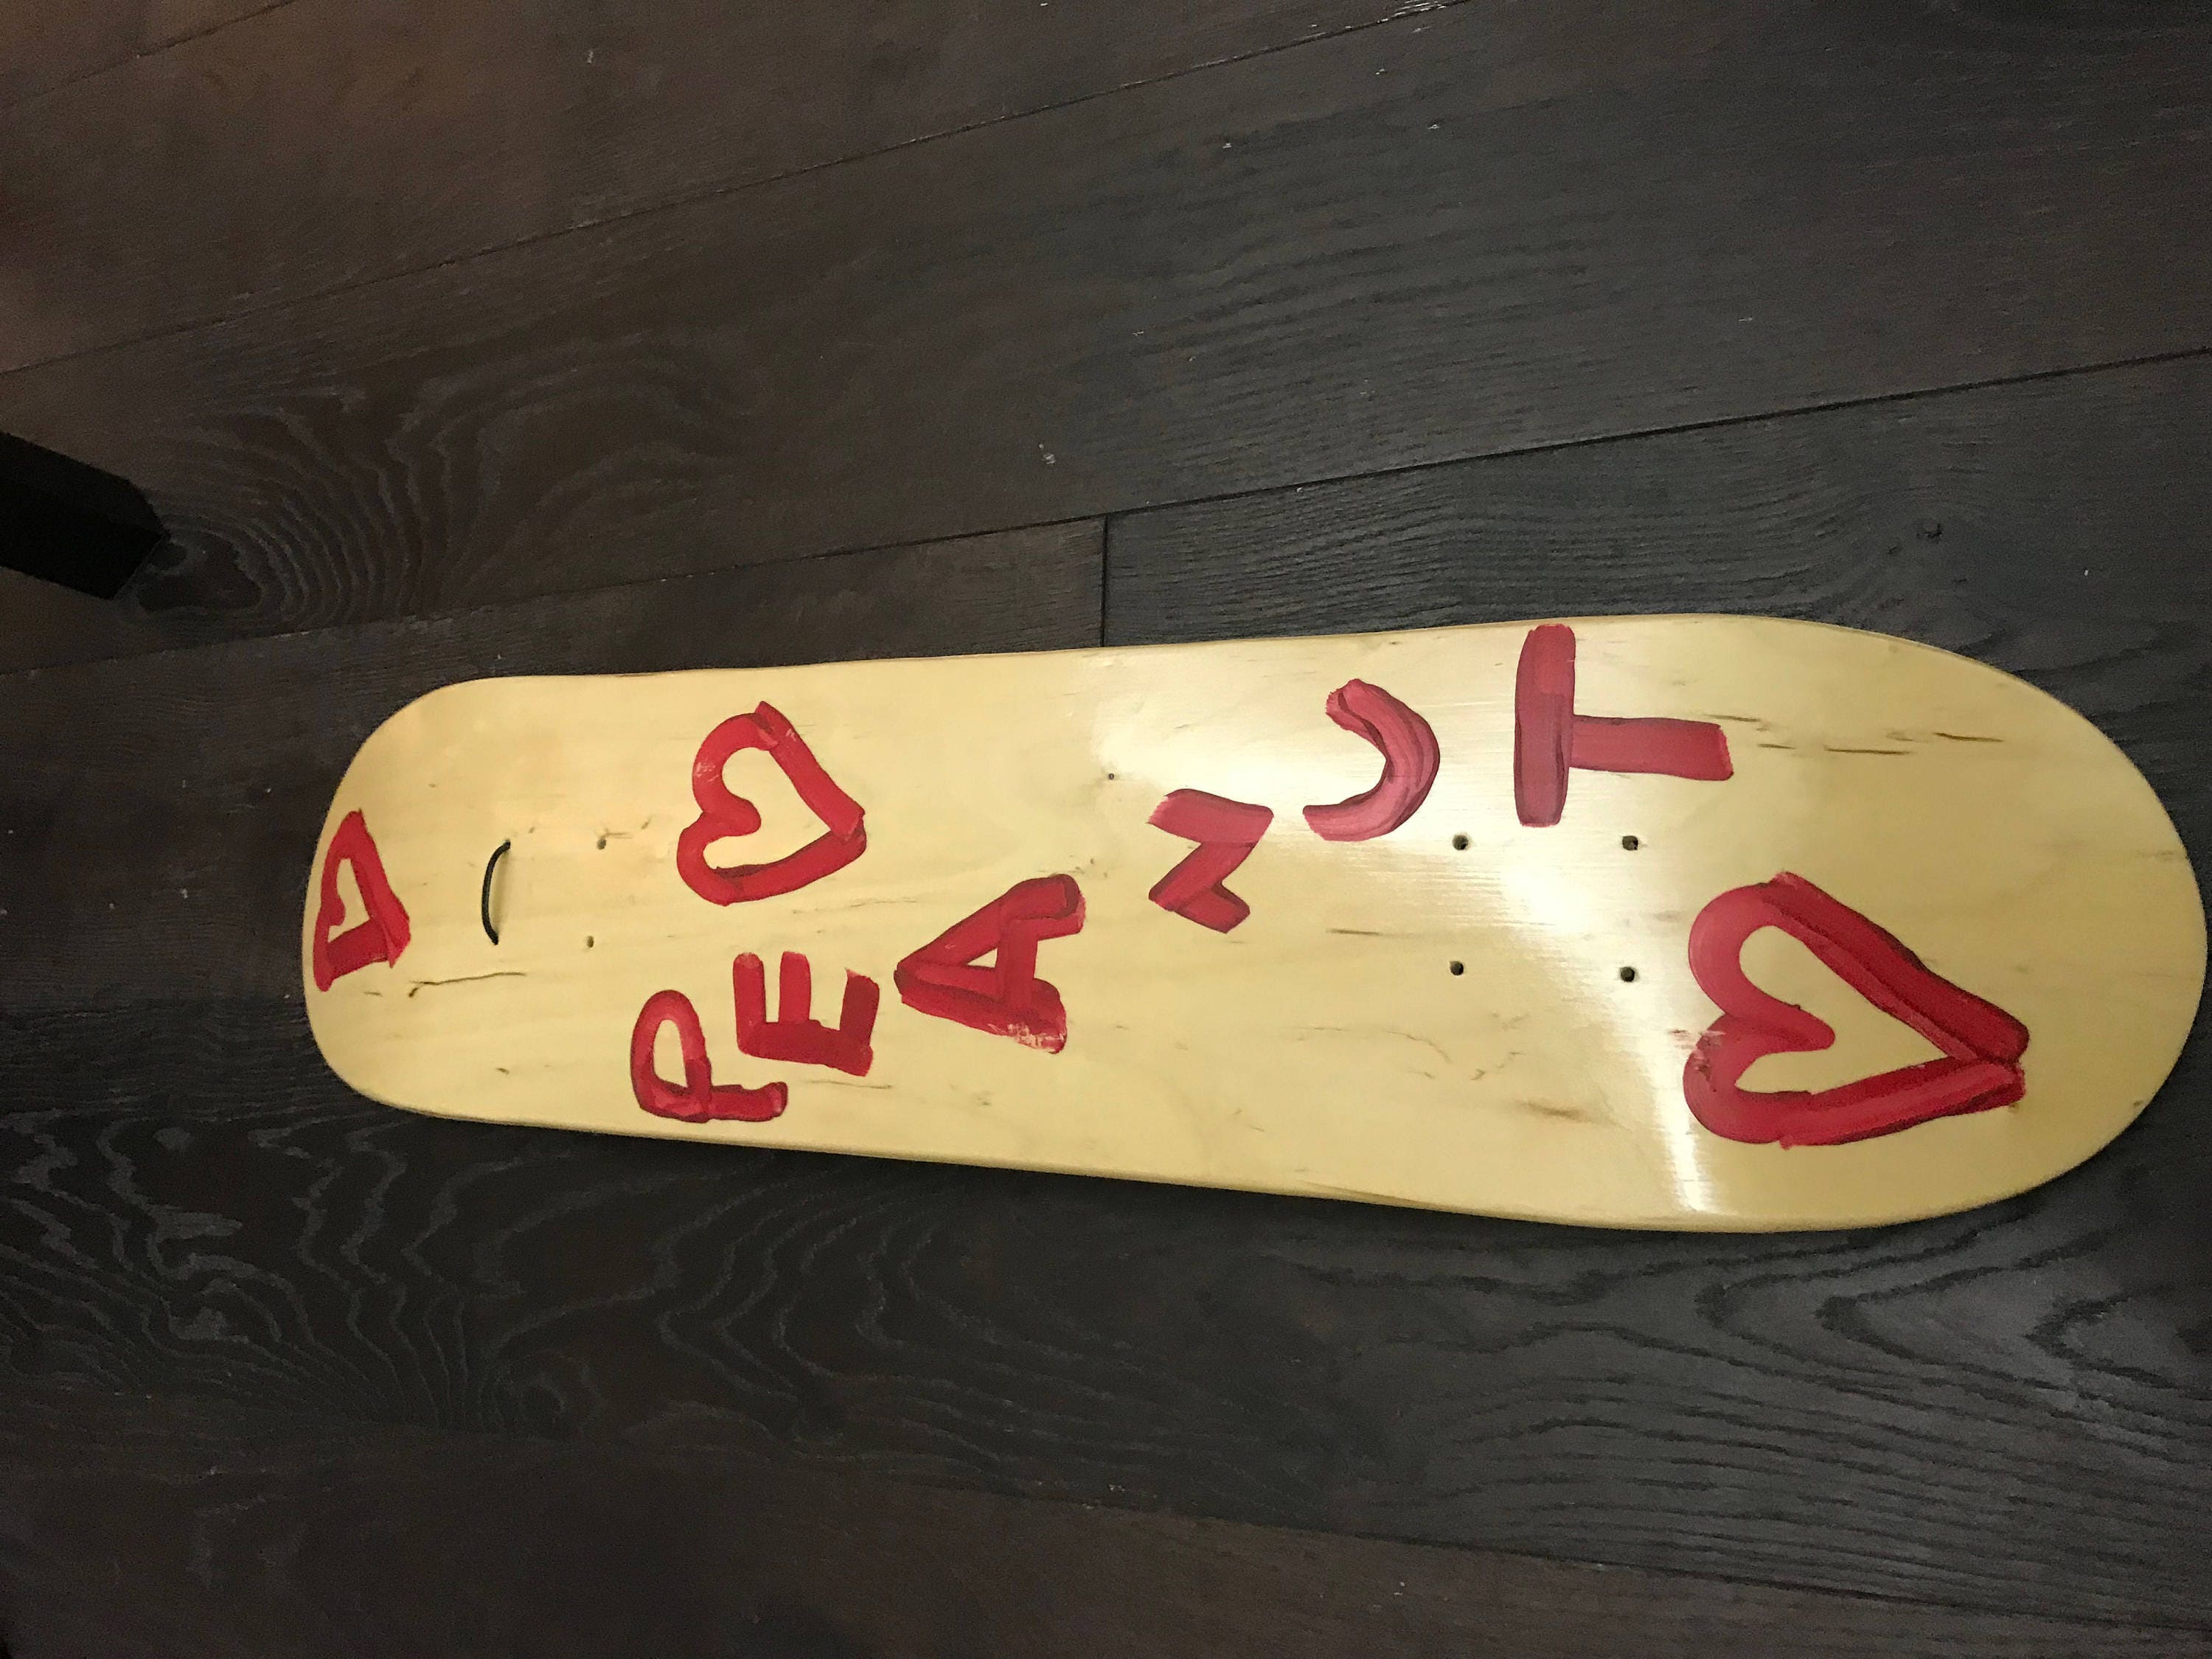 chad tepper hit board | Etsy